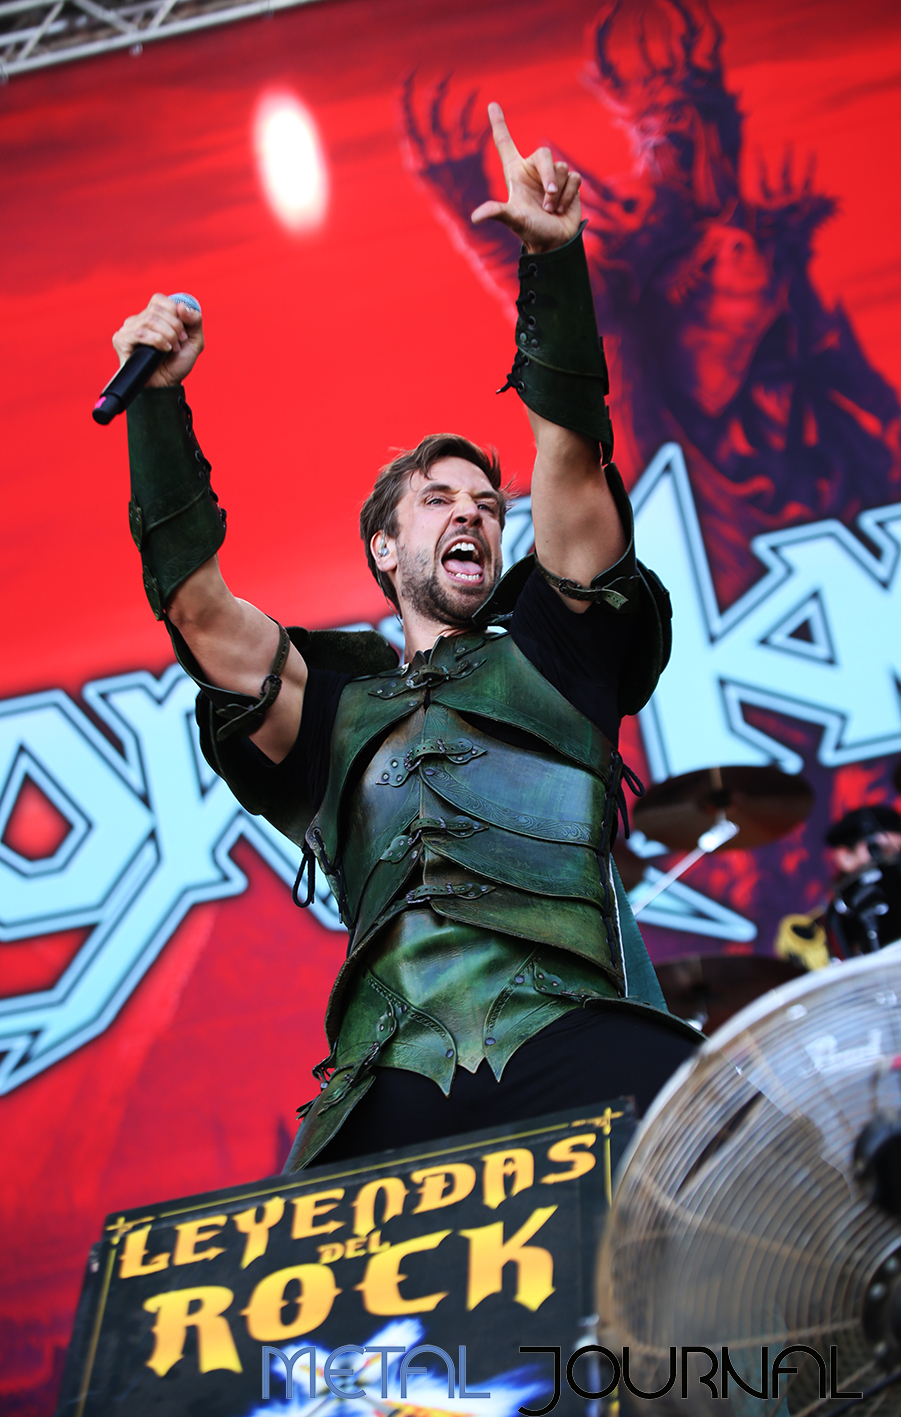 gloryhammer - leyendas del rock 2019 metal journal pic 8